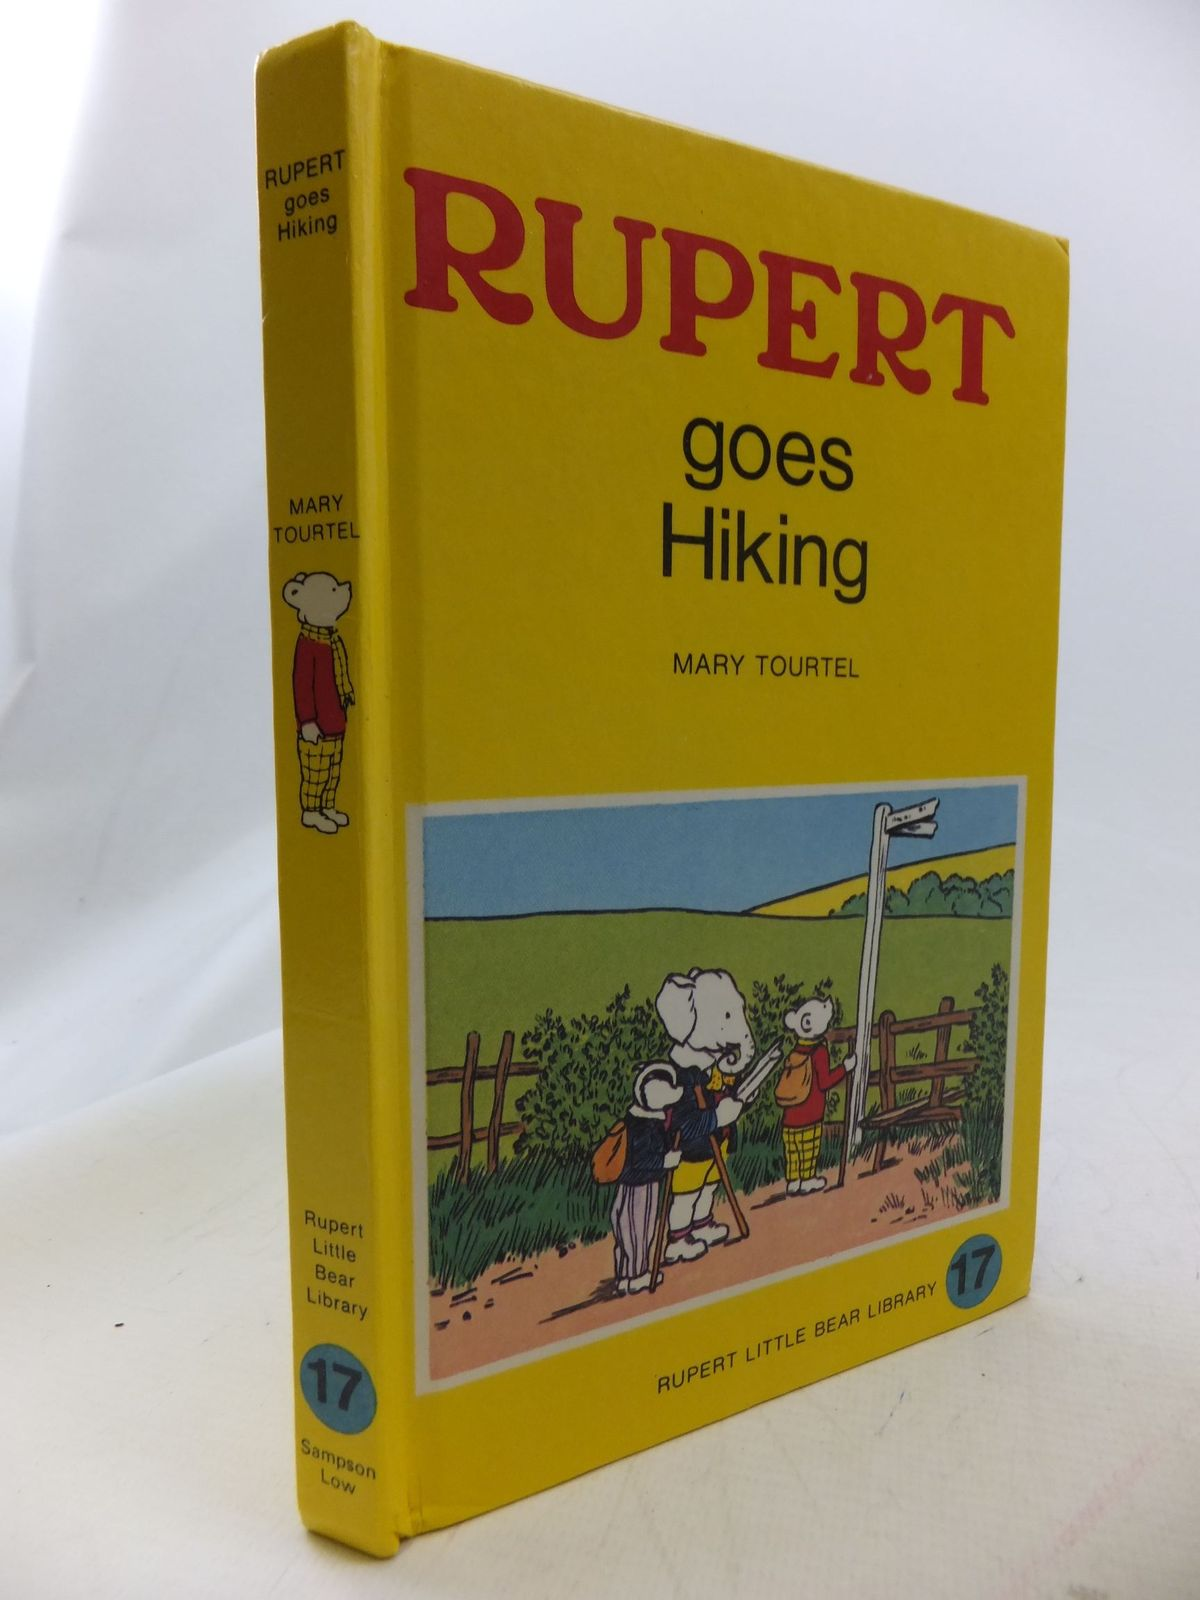 Photo of RUPERT GOES HIKING - RUPERT LITTLE BEAR LIBRARY No. 17 (WOOLWORTH) written by Tourtel, Mary illustrated by Tourtel, Mary published by Sampson Low, Marston & Co. Ltd. (STOCK CODE: 1109508)  for sale by Stella & Rose's Books